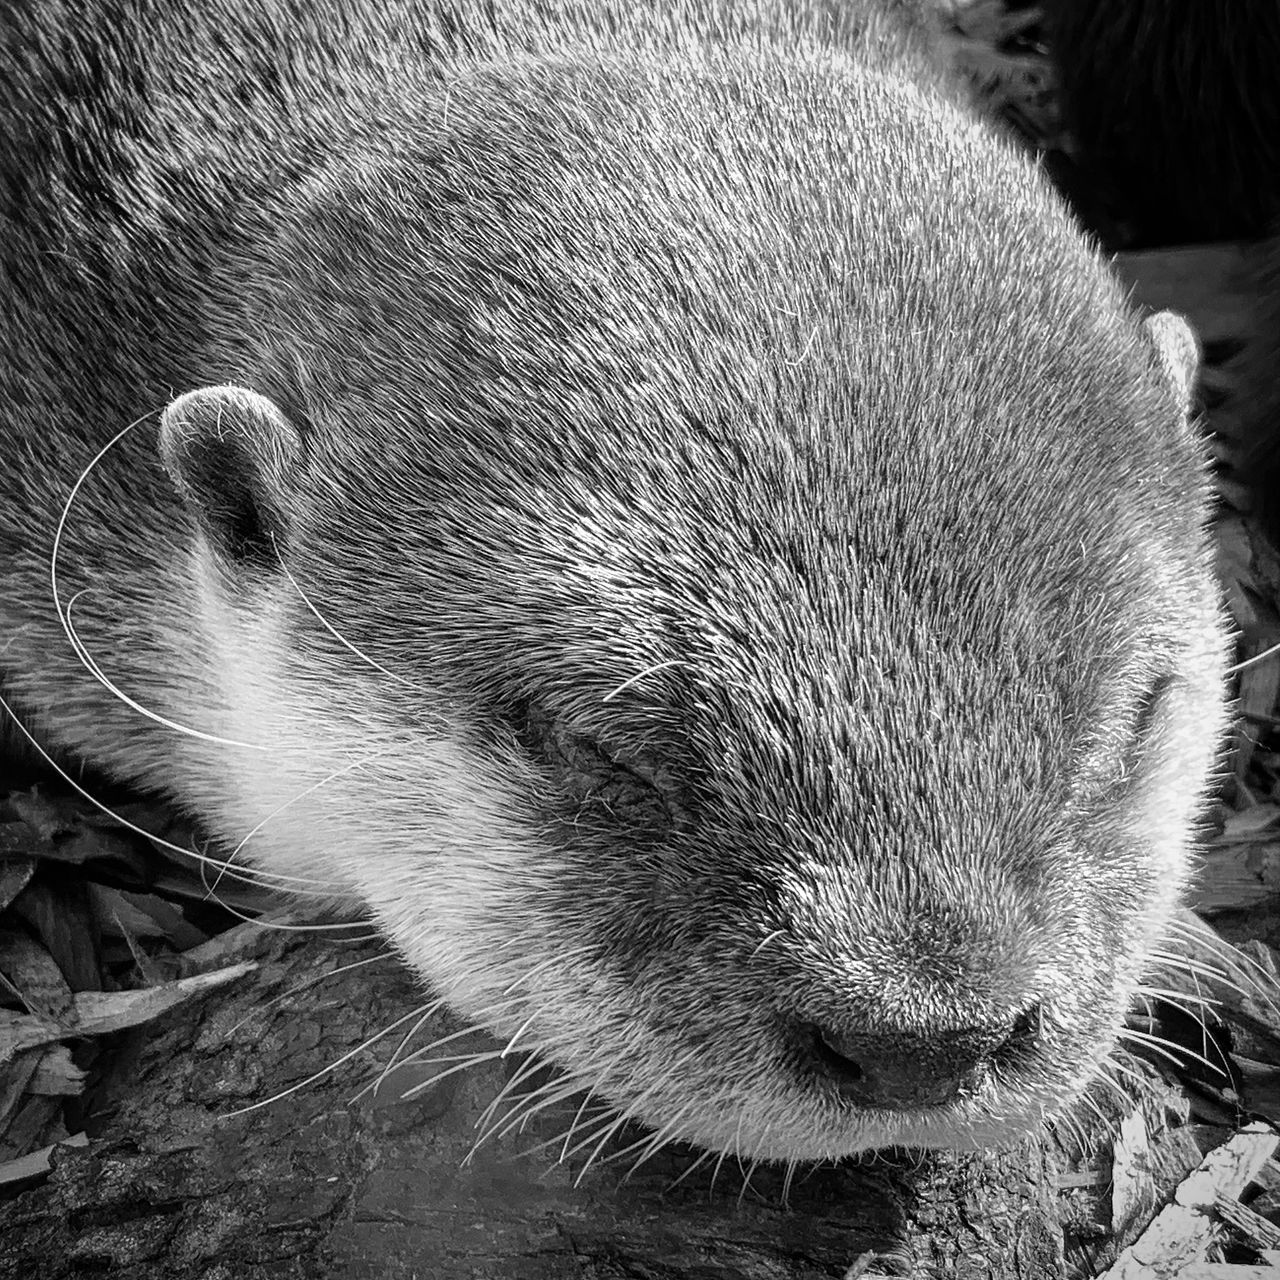 mammal, one animal, animal, animal themes, animal wildlife, close-up, animals in the wild, no people, vertebrate, animal head, animal body part, underwater, day, outdoors, nature, relaxation, focus on foreground, otter, whisker, animal hair, snout, animal nose